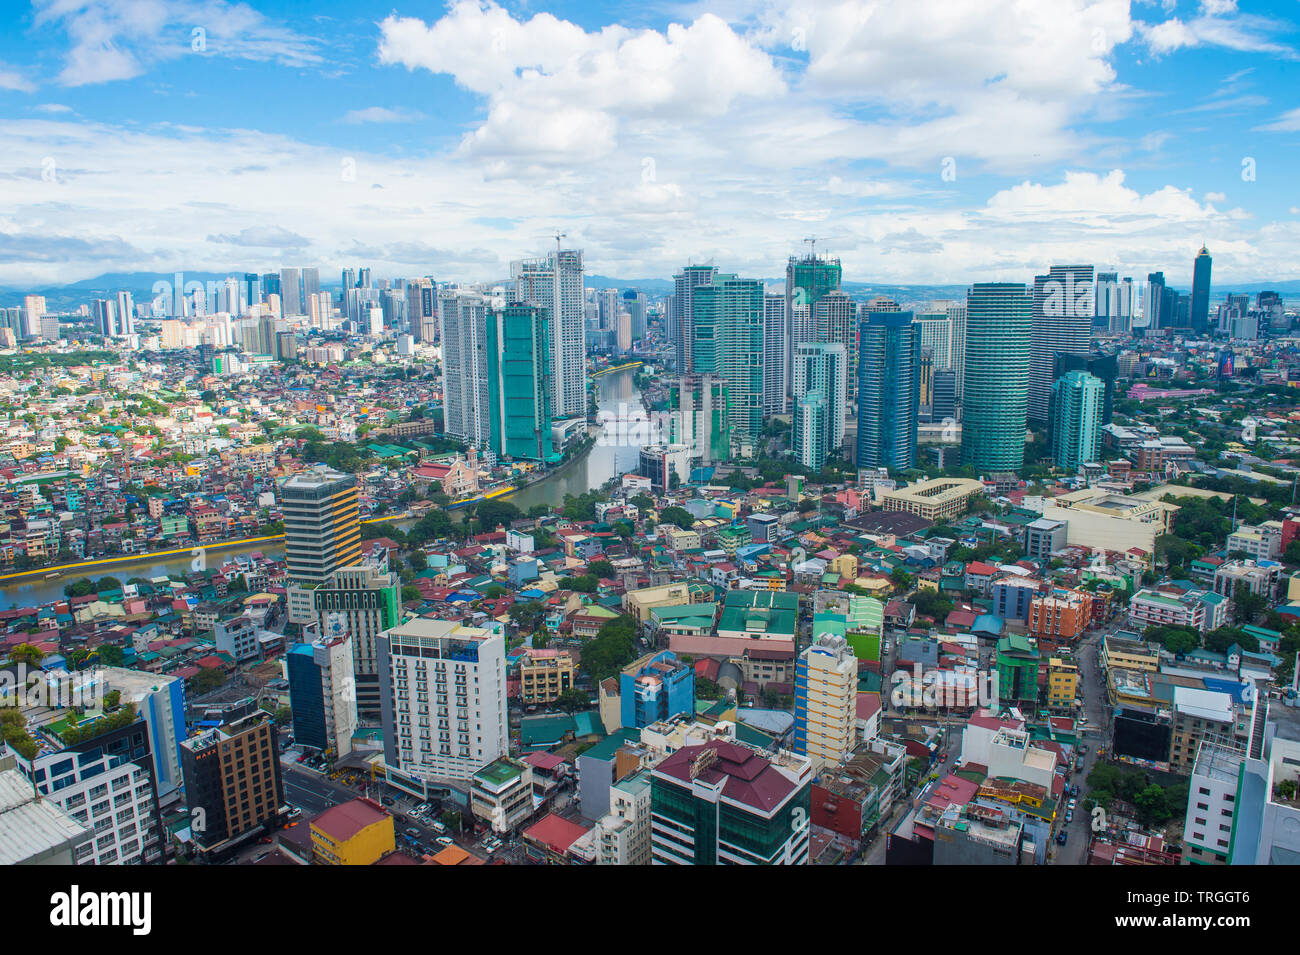 MANILA , PHILIPPINES - NOV 22 : City view of Manila Philippines from building in Makati on November 22 2018.  Manila is the most densely populated cit - Stock Image